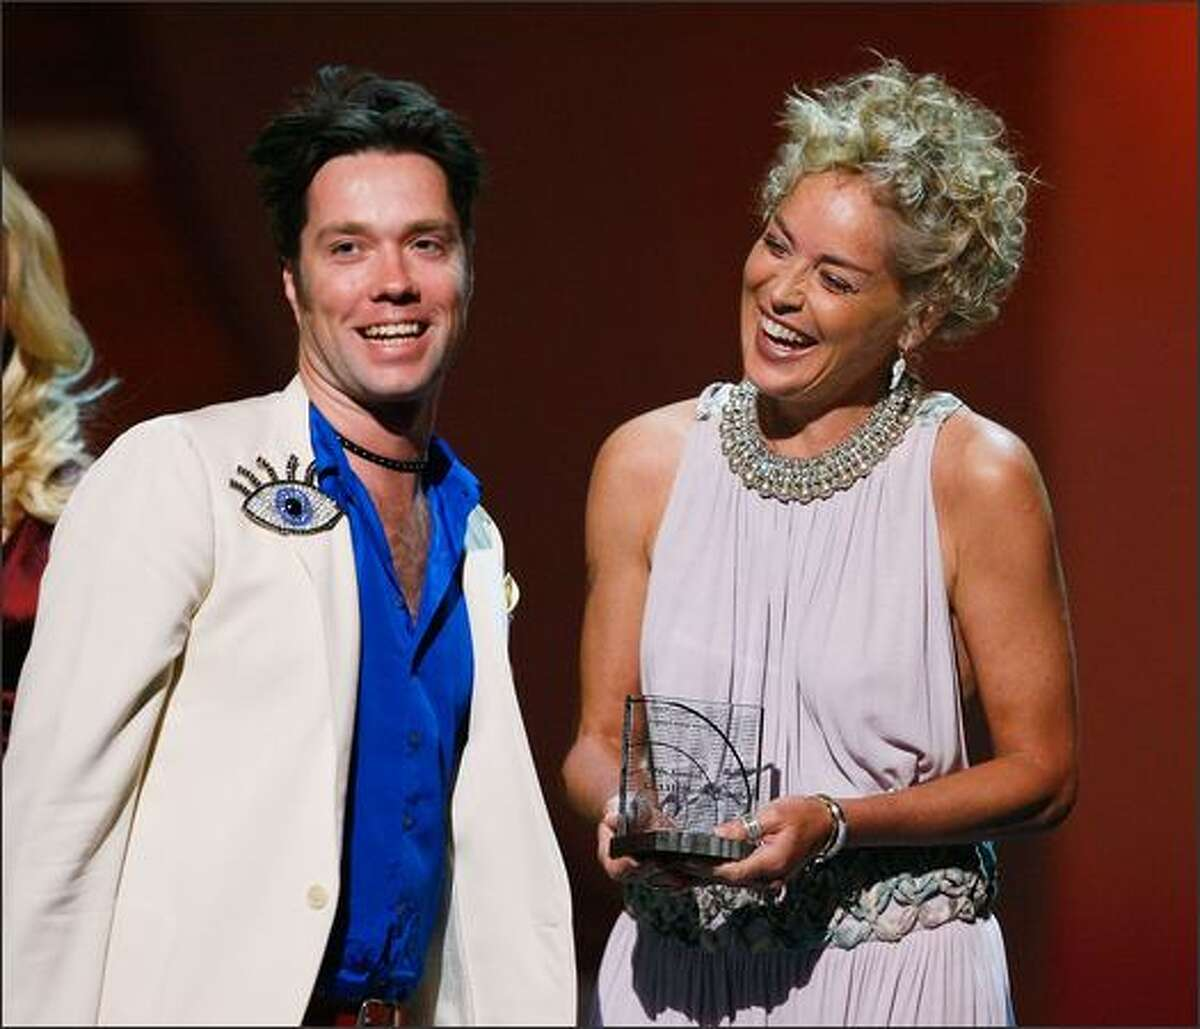 Singer Rufus Wainwright accepts the Stephen F. Kolzak Award from actress Sharon Stone onstage at the 19th Annual GLAAD Media Awards on April 26, 2008 at the Kodak Theatre in Hollywood, California.